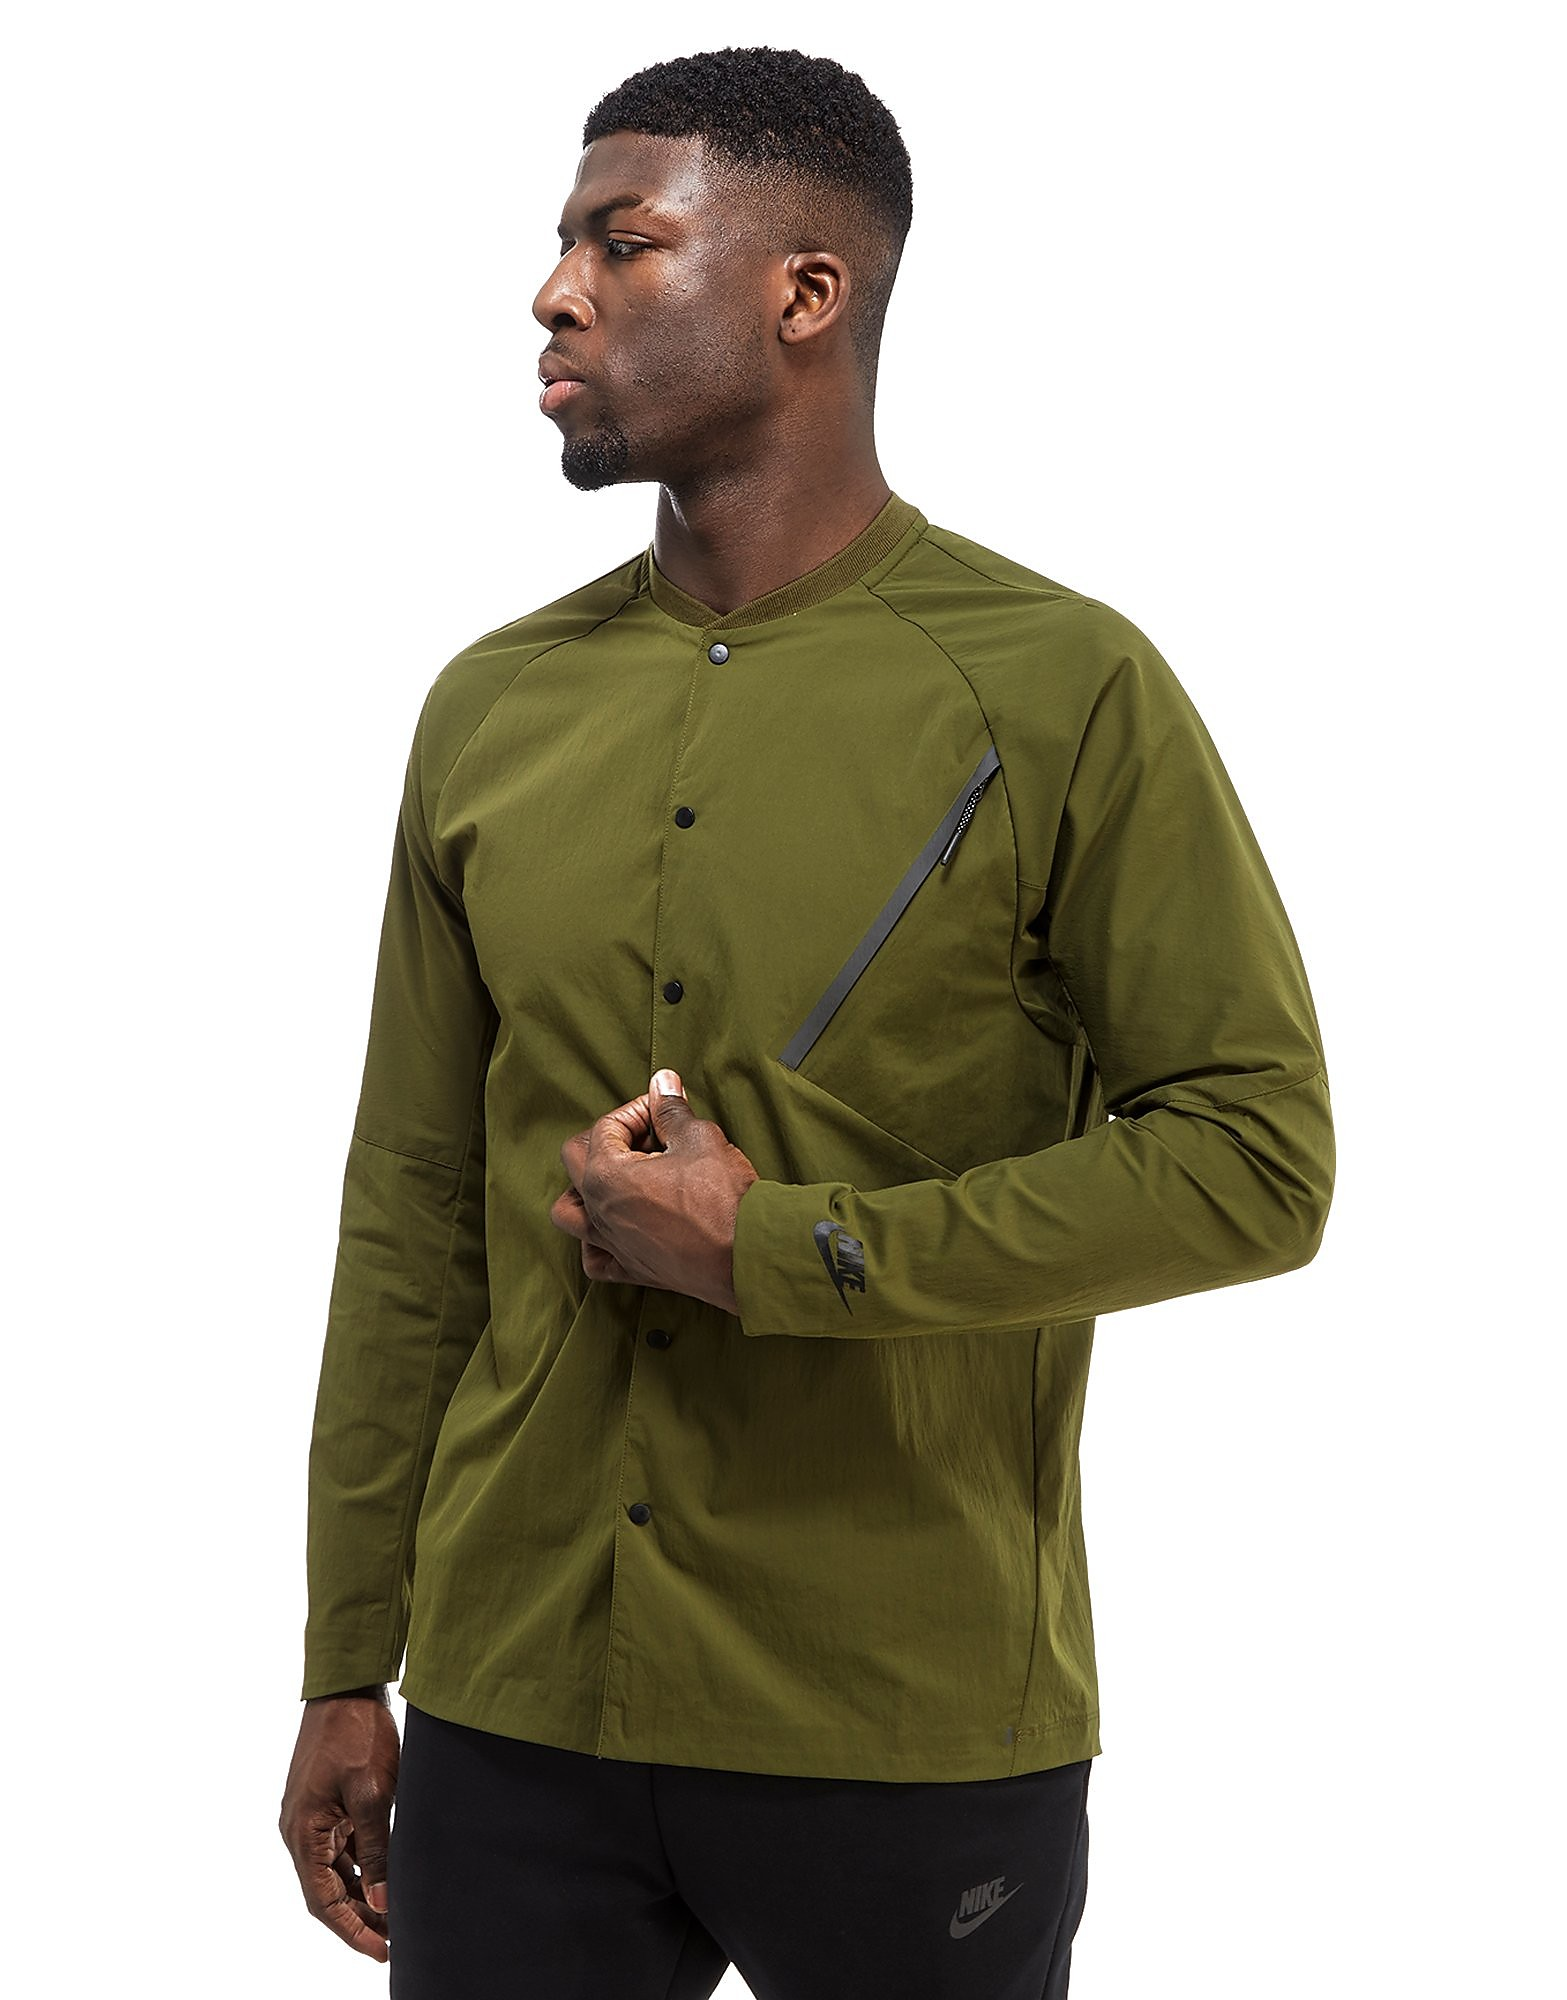 Nike Bonded Long Sleeve Top